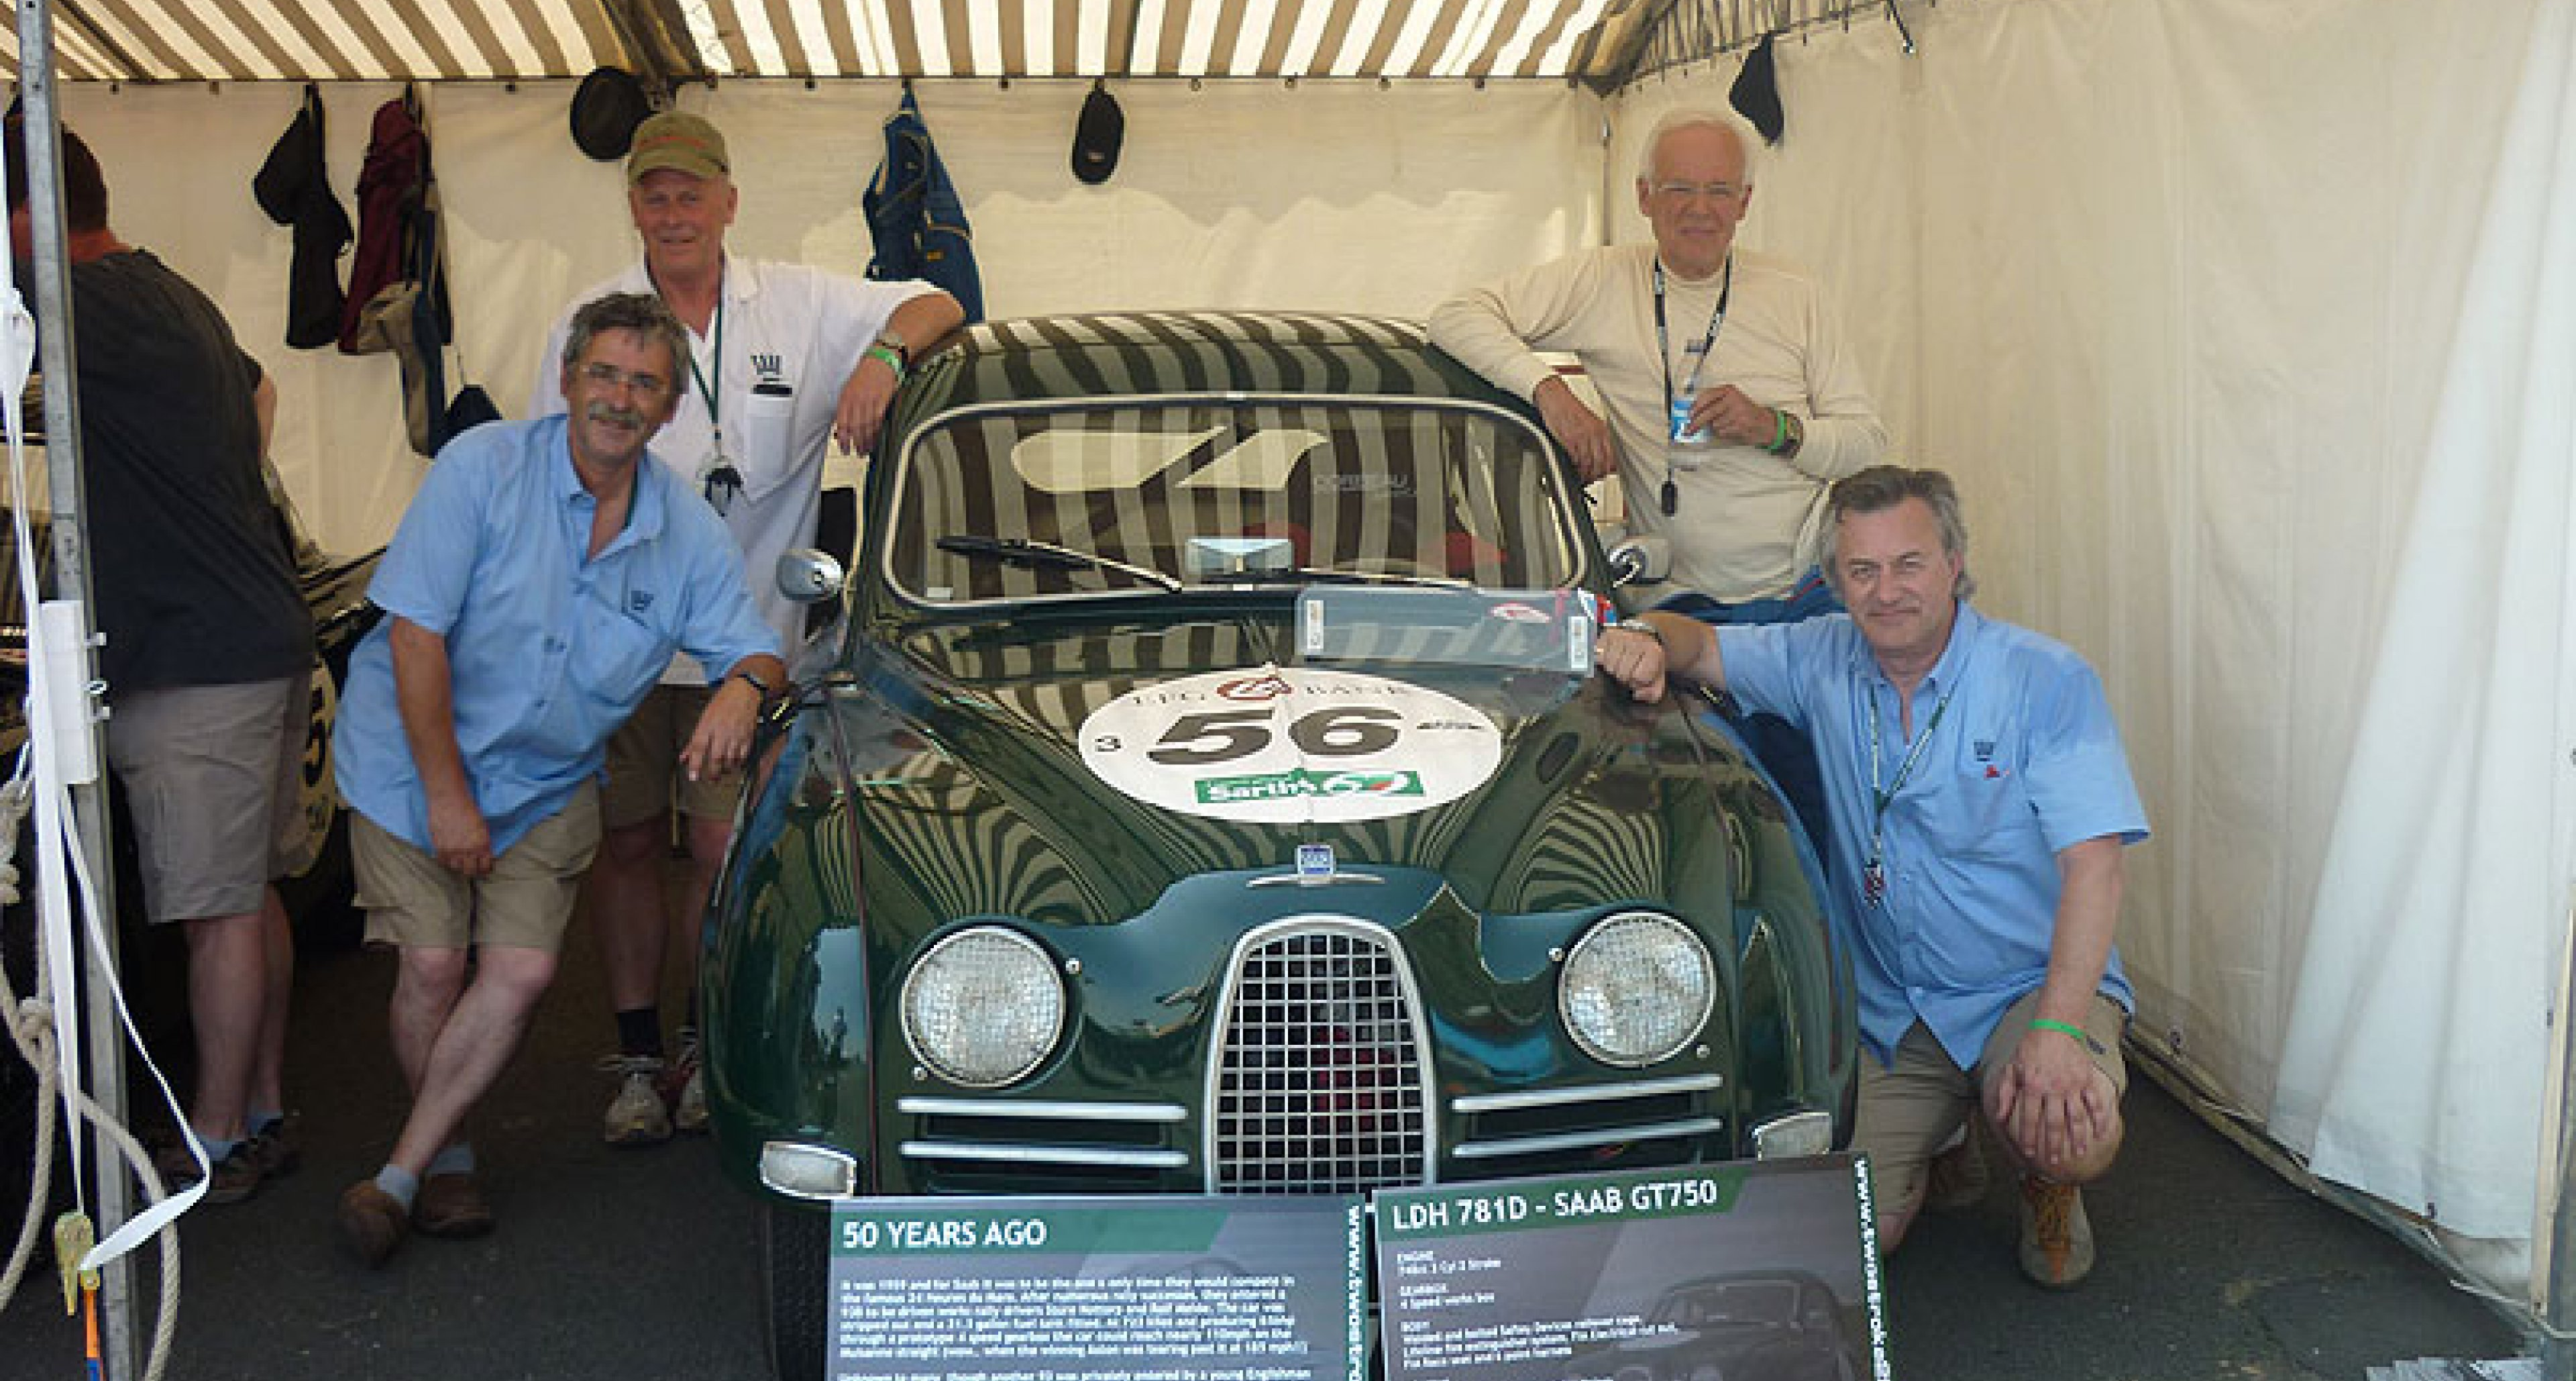 Saab at the 2010 Le Mans Classic